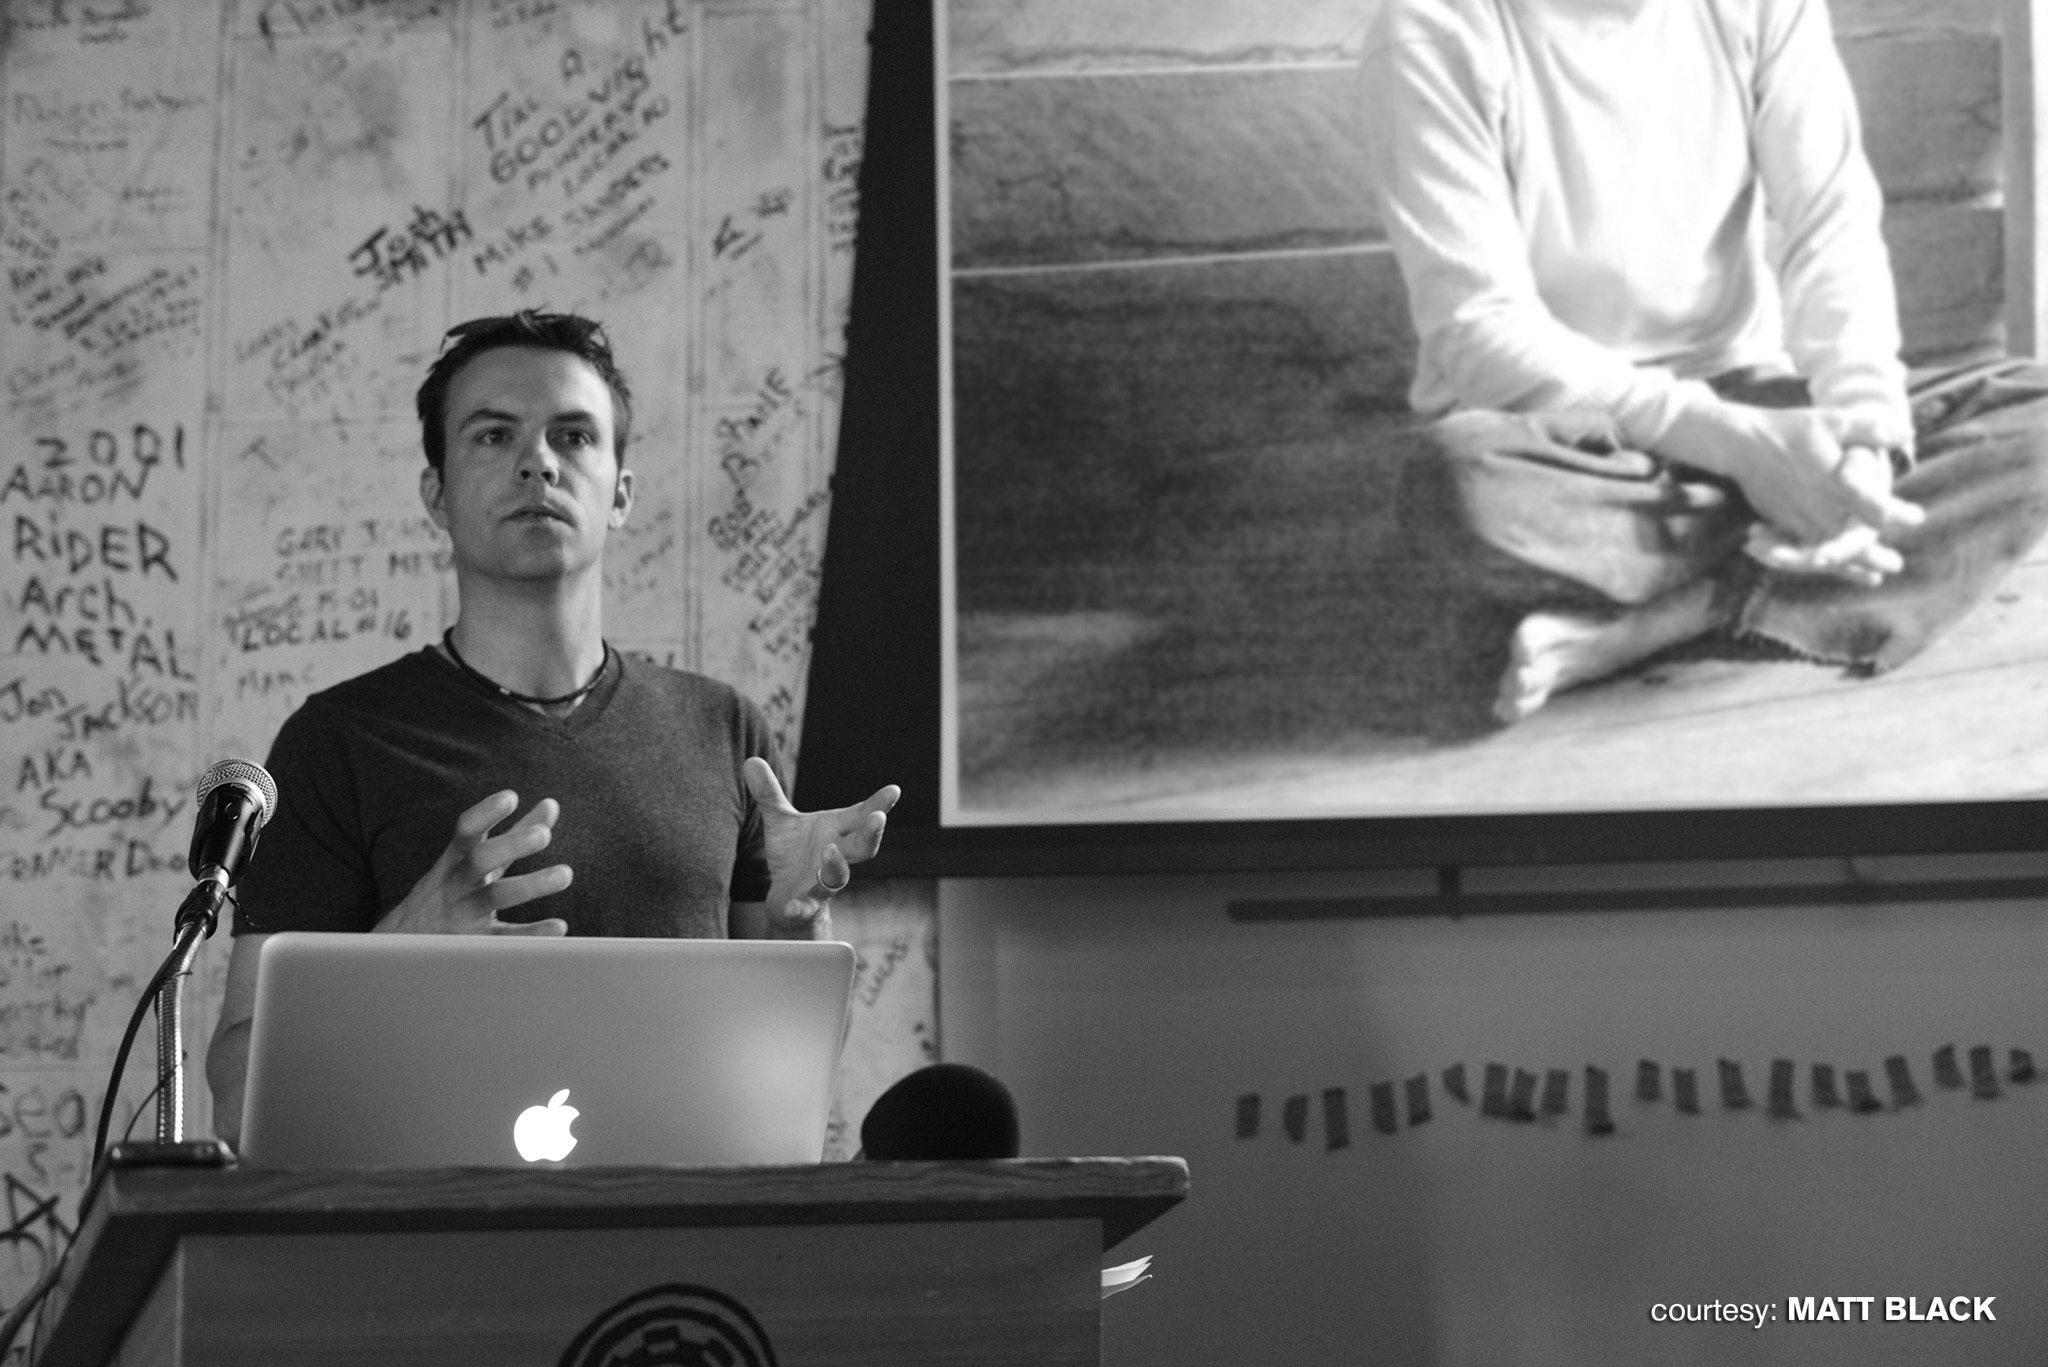 A presentation at Blue Earth Alliance's Collaborations for Cause conference, about photographers working with NGOs to help explore complex issues and their solutions.